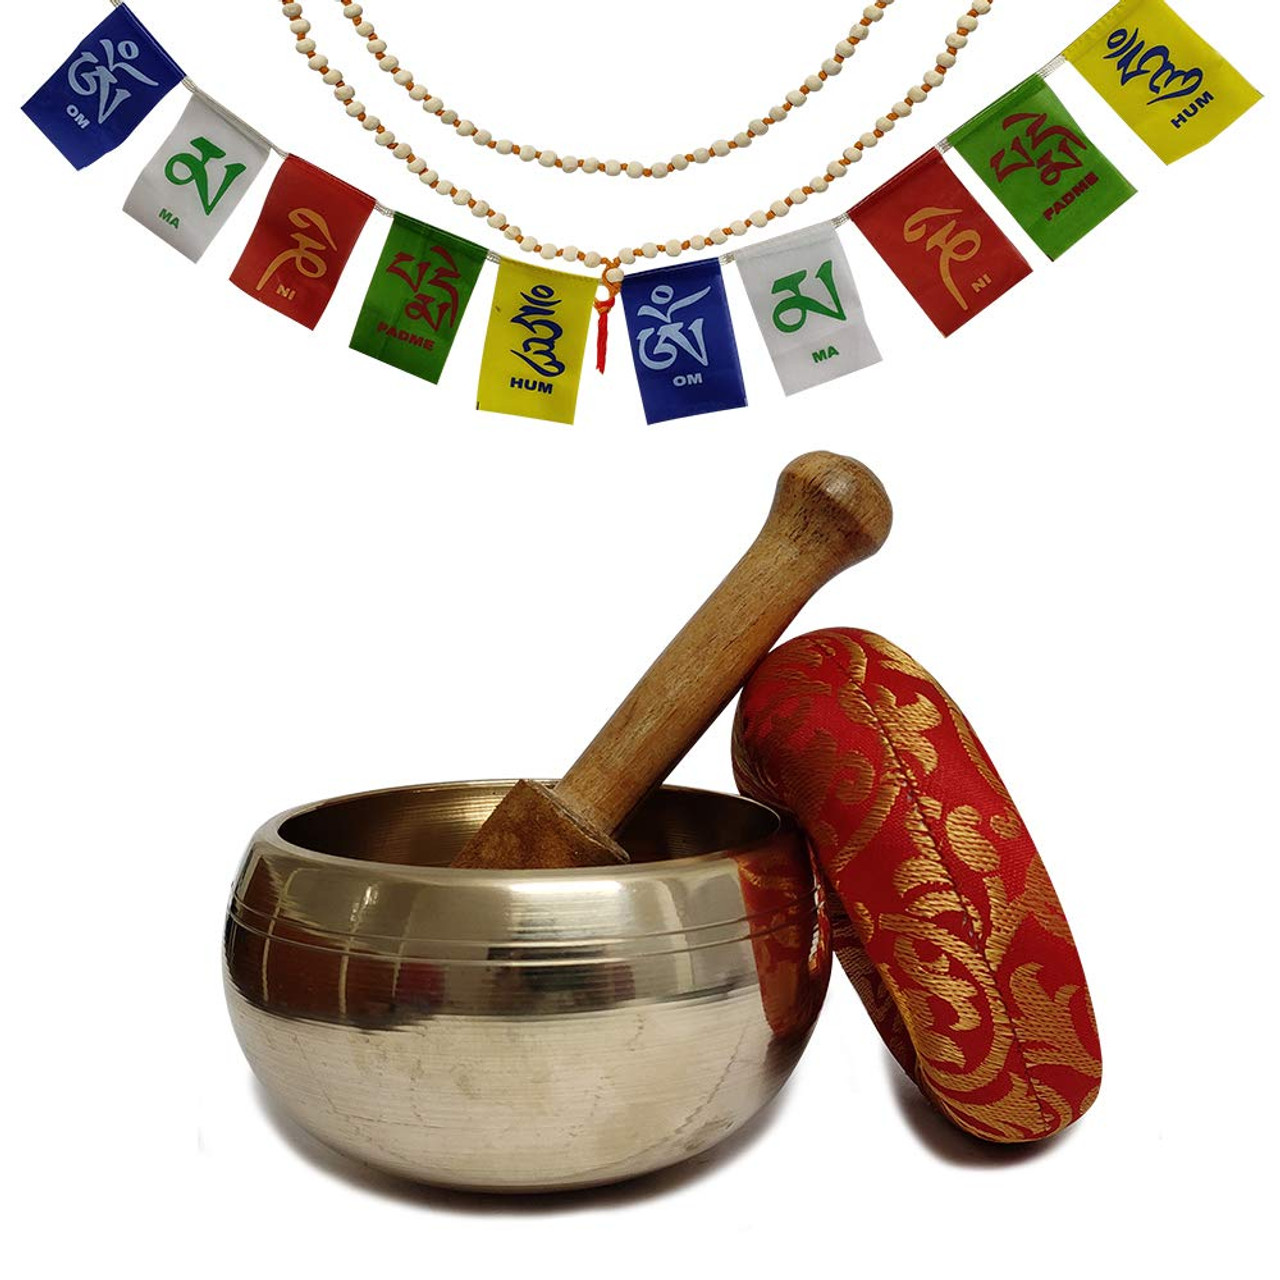 Hand Crafted Tibetan 4 Inch Plain Finished Singing Bowl Set By Trumiri - Helpful for Meditation Chakra Healing Relaxation Peace Mindfulness with Premium Tulsi Beads, Flag, Mallet, Cushion & Potli (Bag)